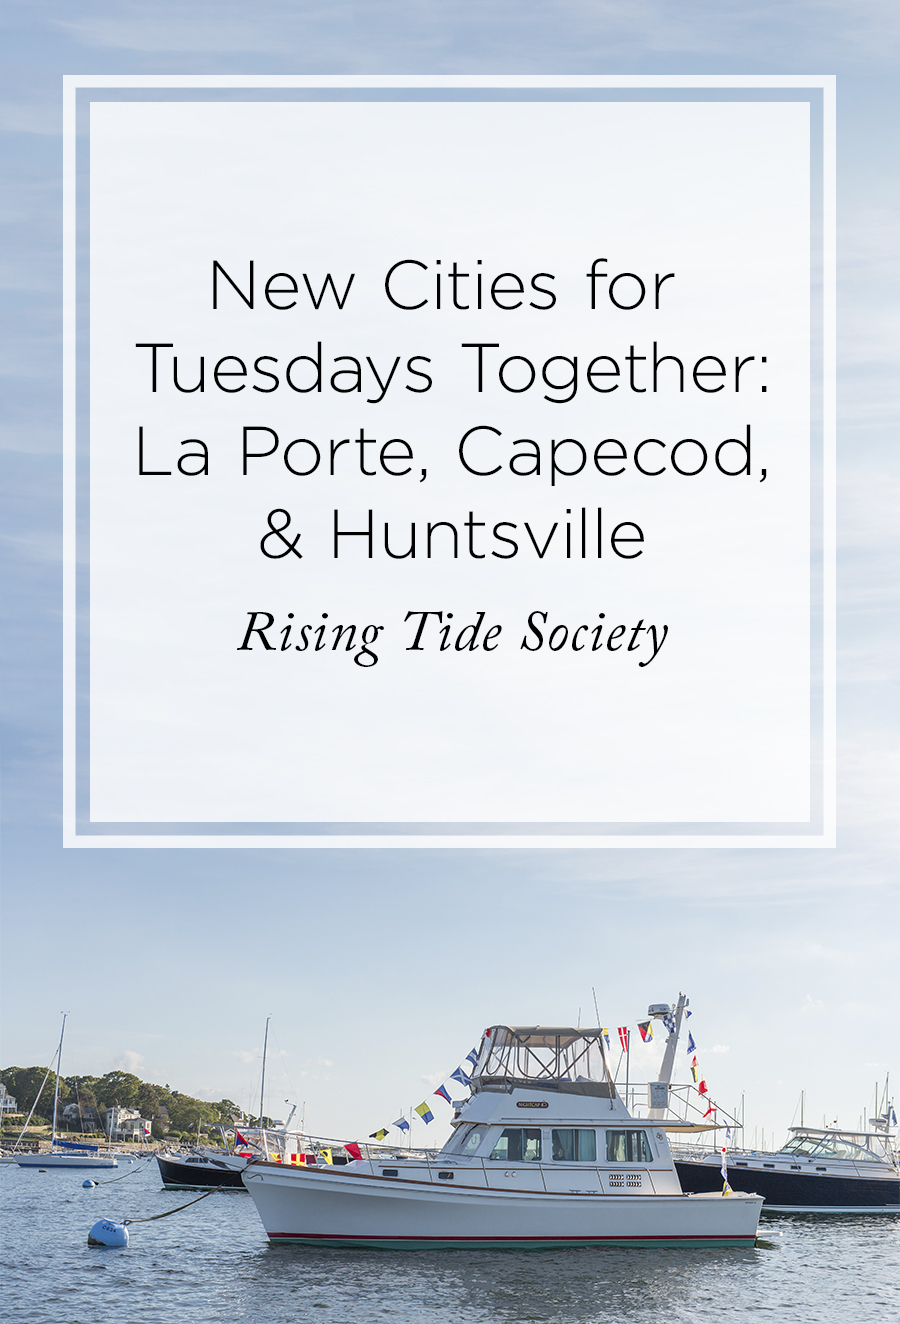 Tuesdays Togeth in La Porte, Capecod, and Huntsvile